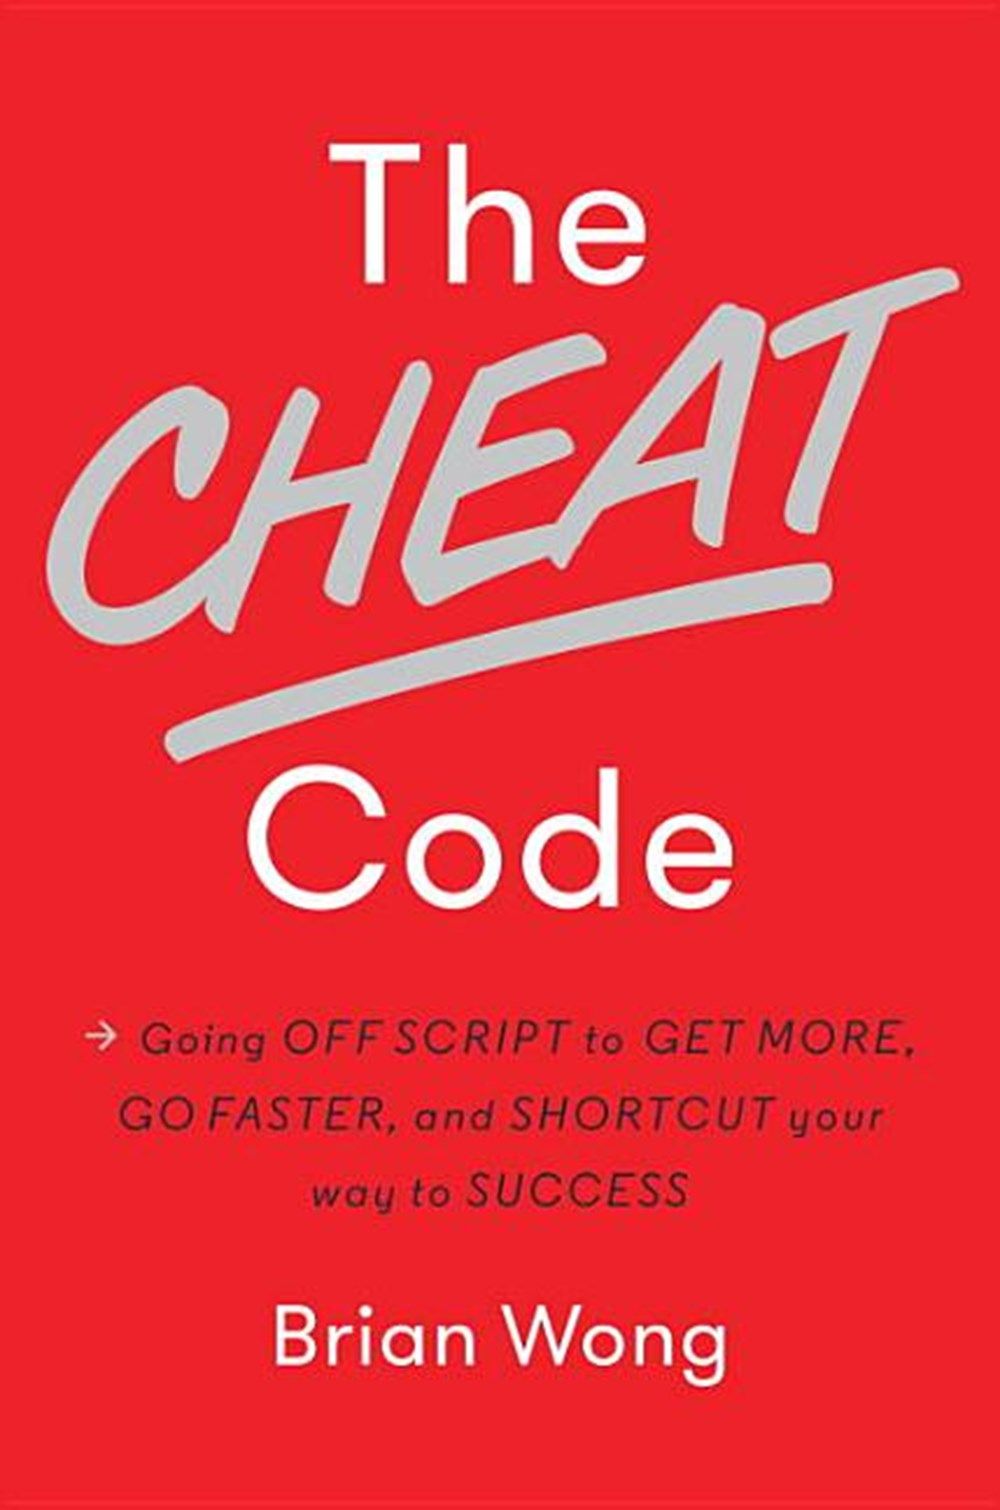 Cheat Code Going Off Script to Get More, Go Faster, and Shortcut Your Way to Success